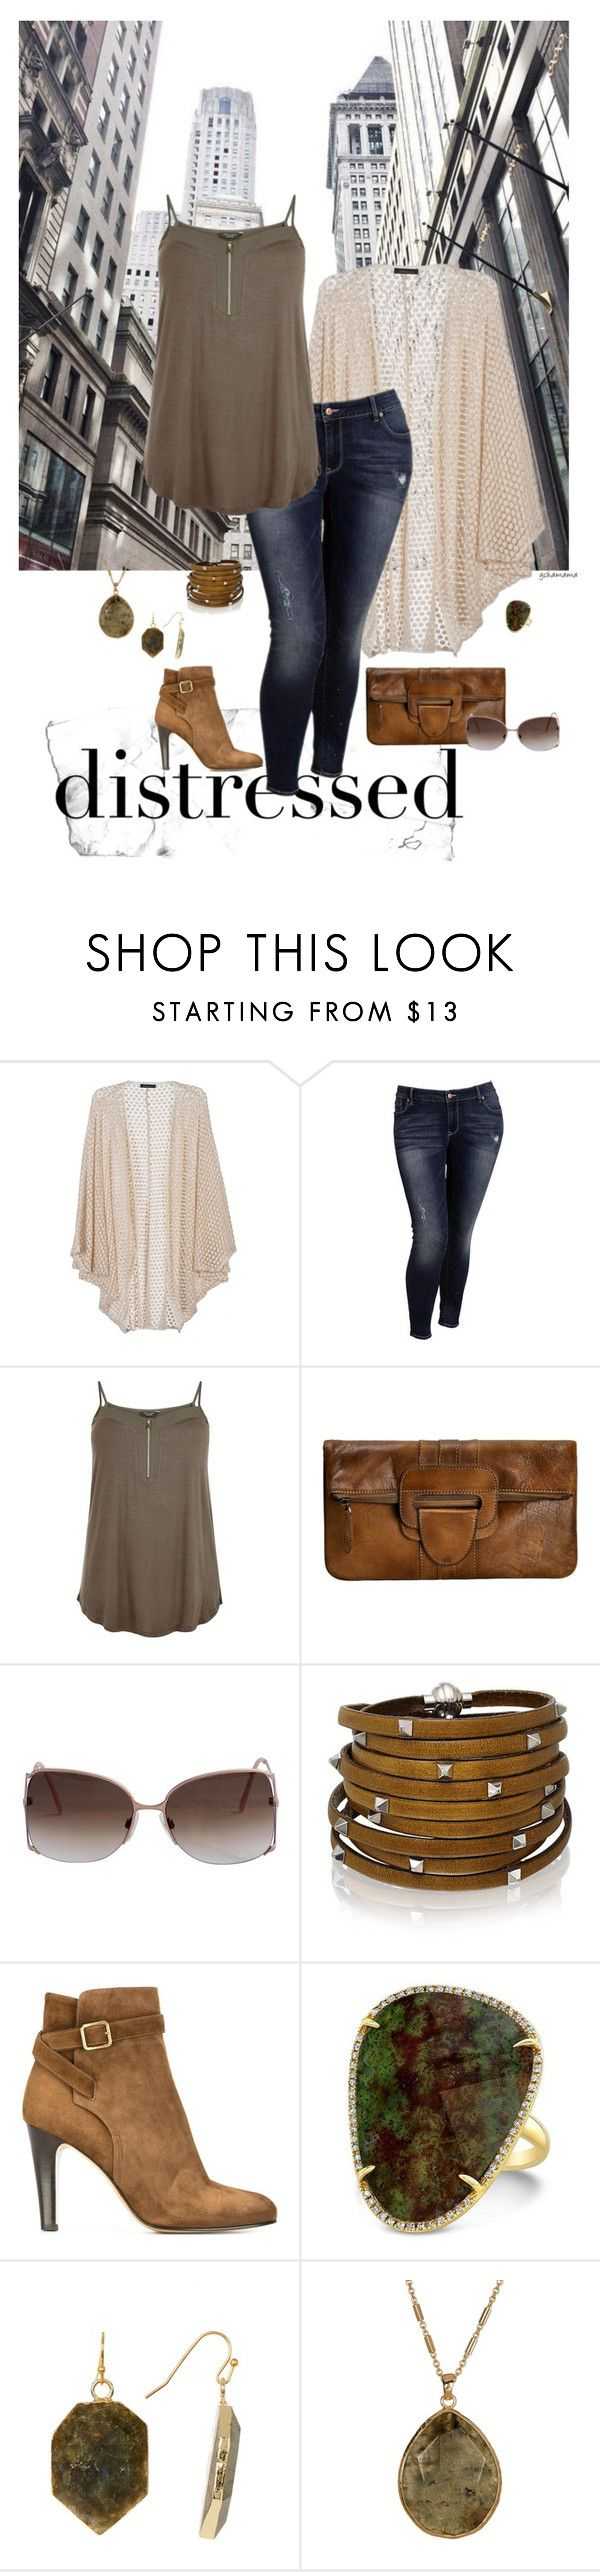 """Roughed up- plus size"" by gchamama ❤ liked on Polyvore featuring Old Navy, Sif Jakobs Jewellery, Michel Vivien, Anne Sisteron, Panacea, 14th & Union and distressed"